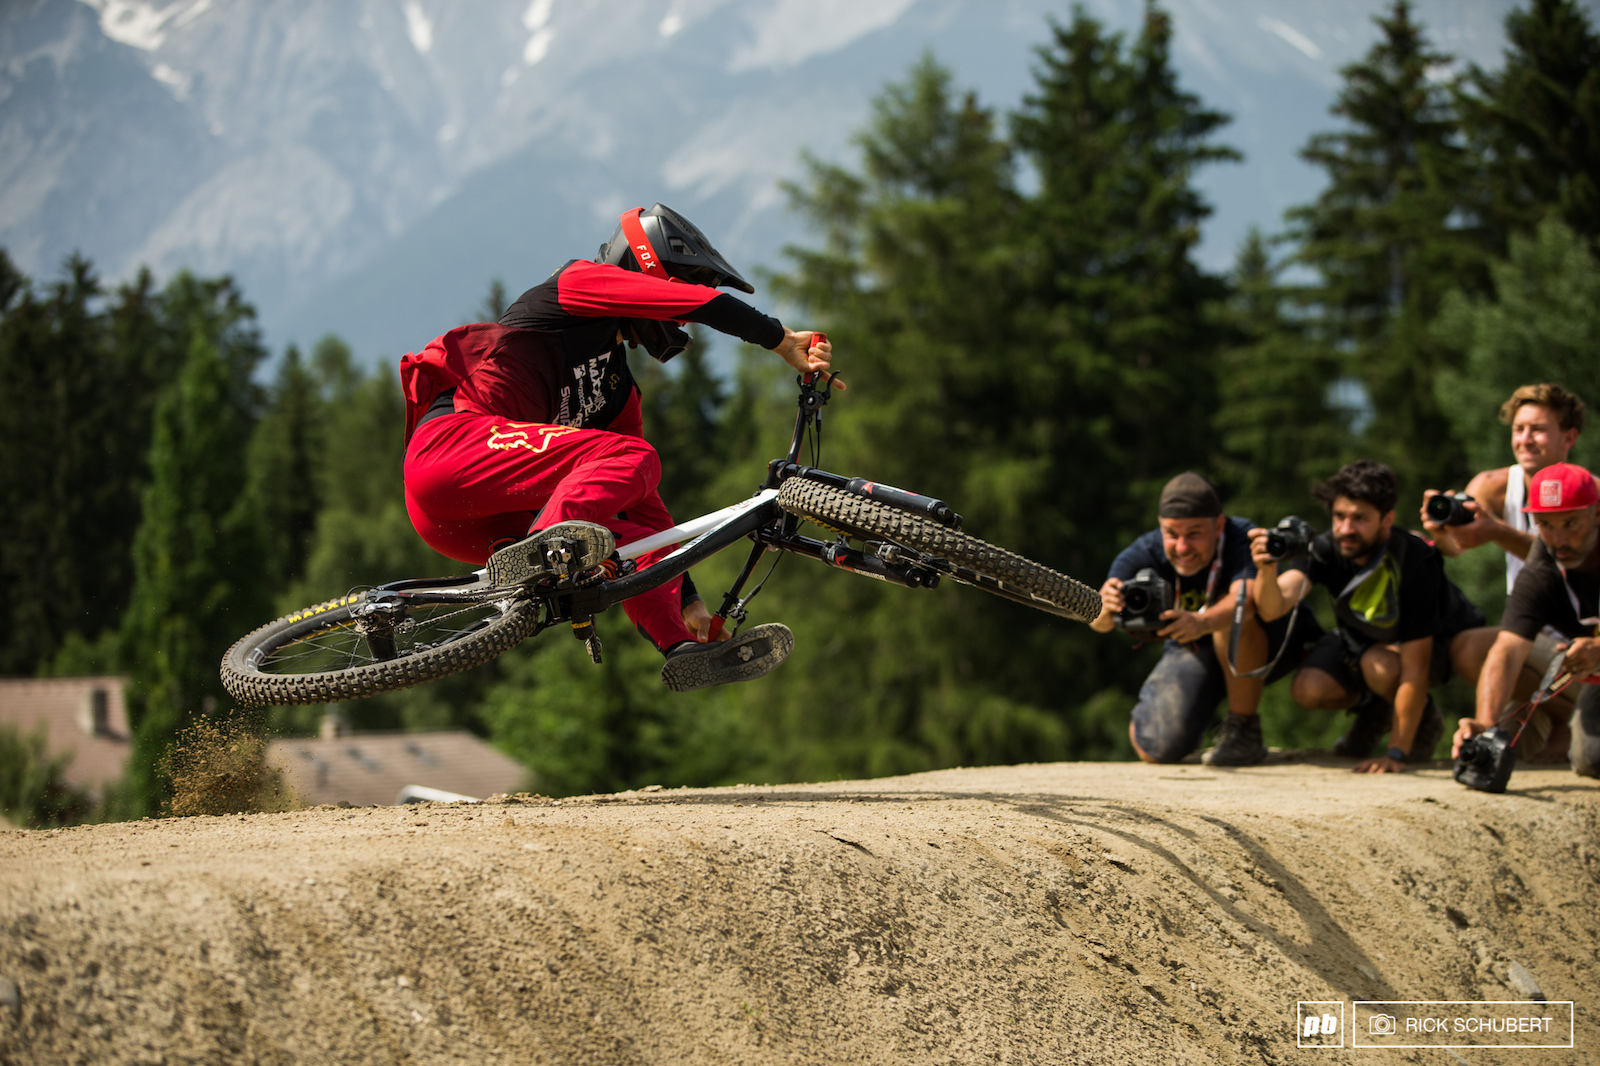 Bas van Steenbergen with a real unique style and method to keep it low.